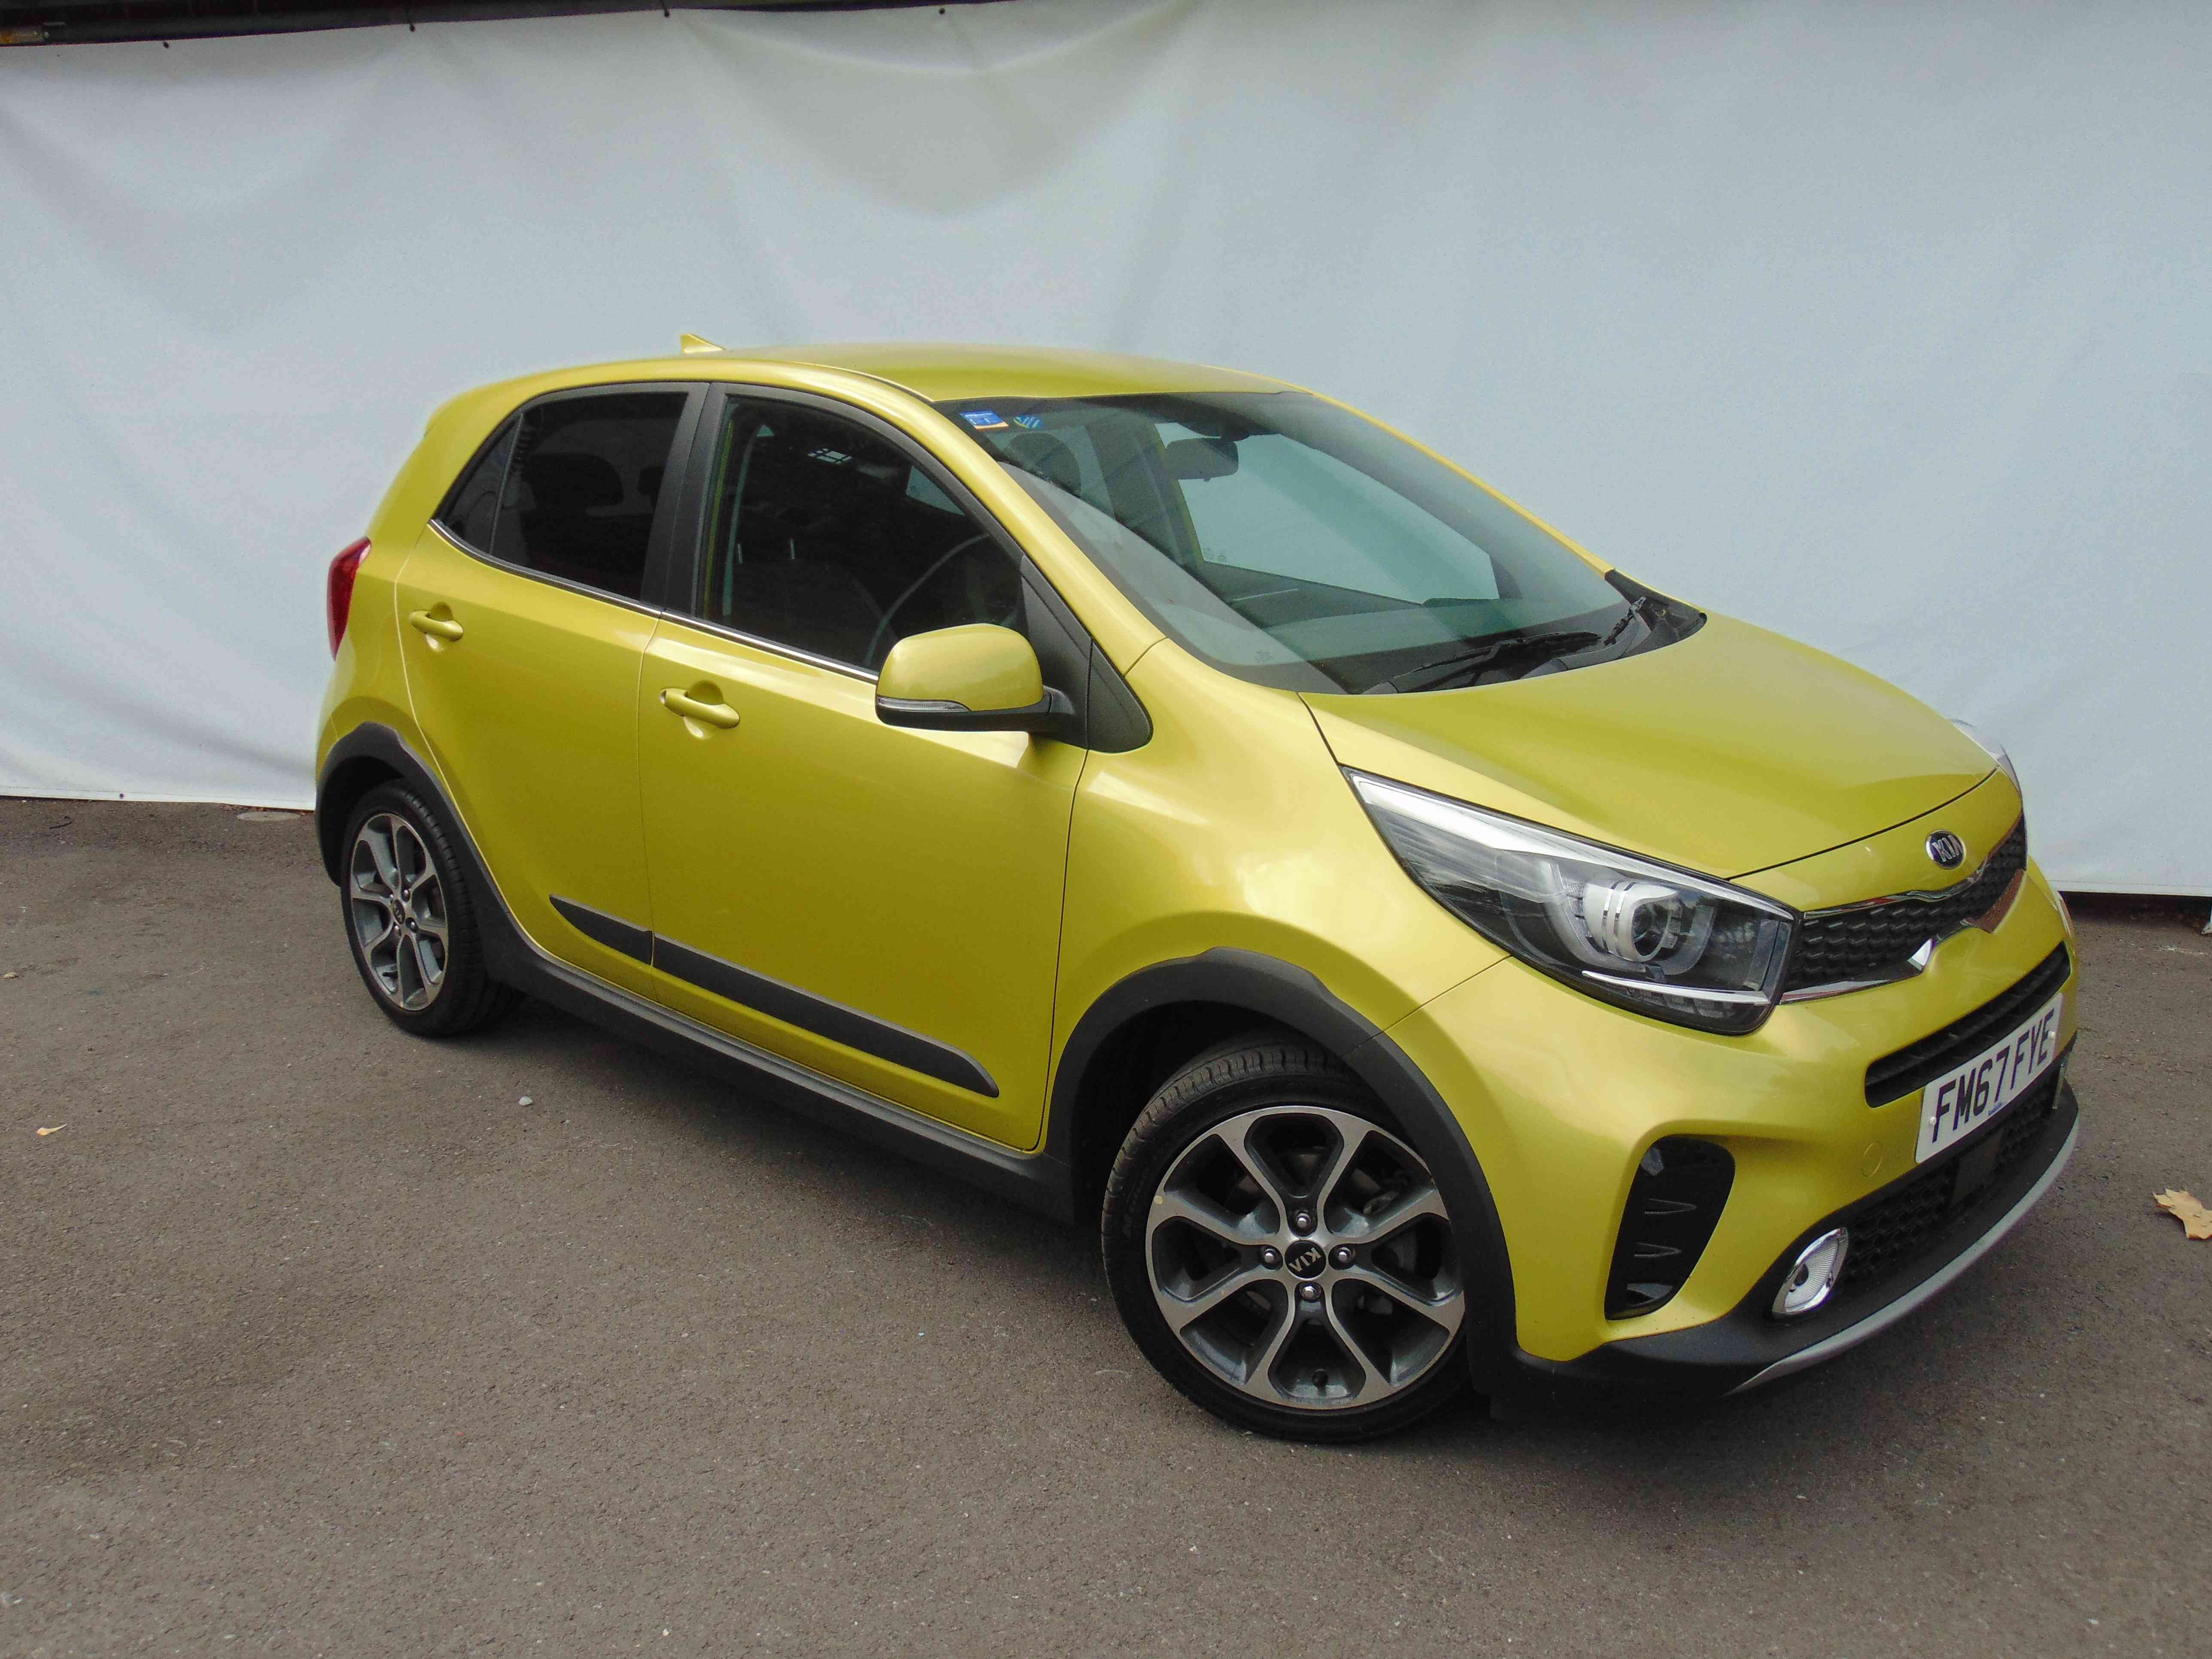 Car for Sale Kia Luxury Used Kia Cars for Sale In East Midlands